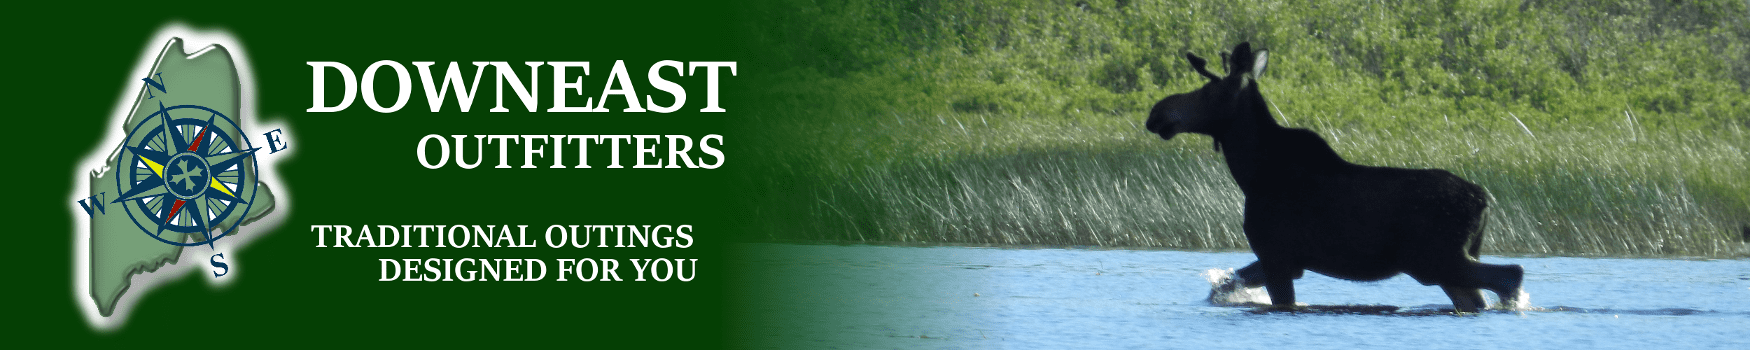 Downeast Outfitters